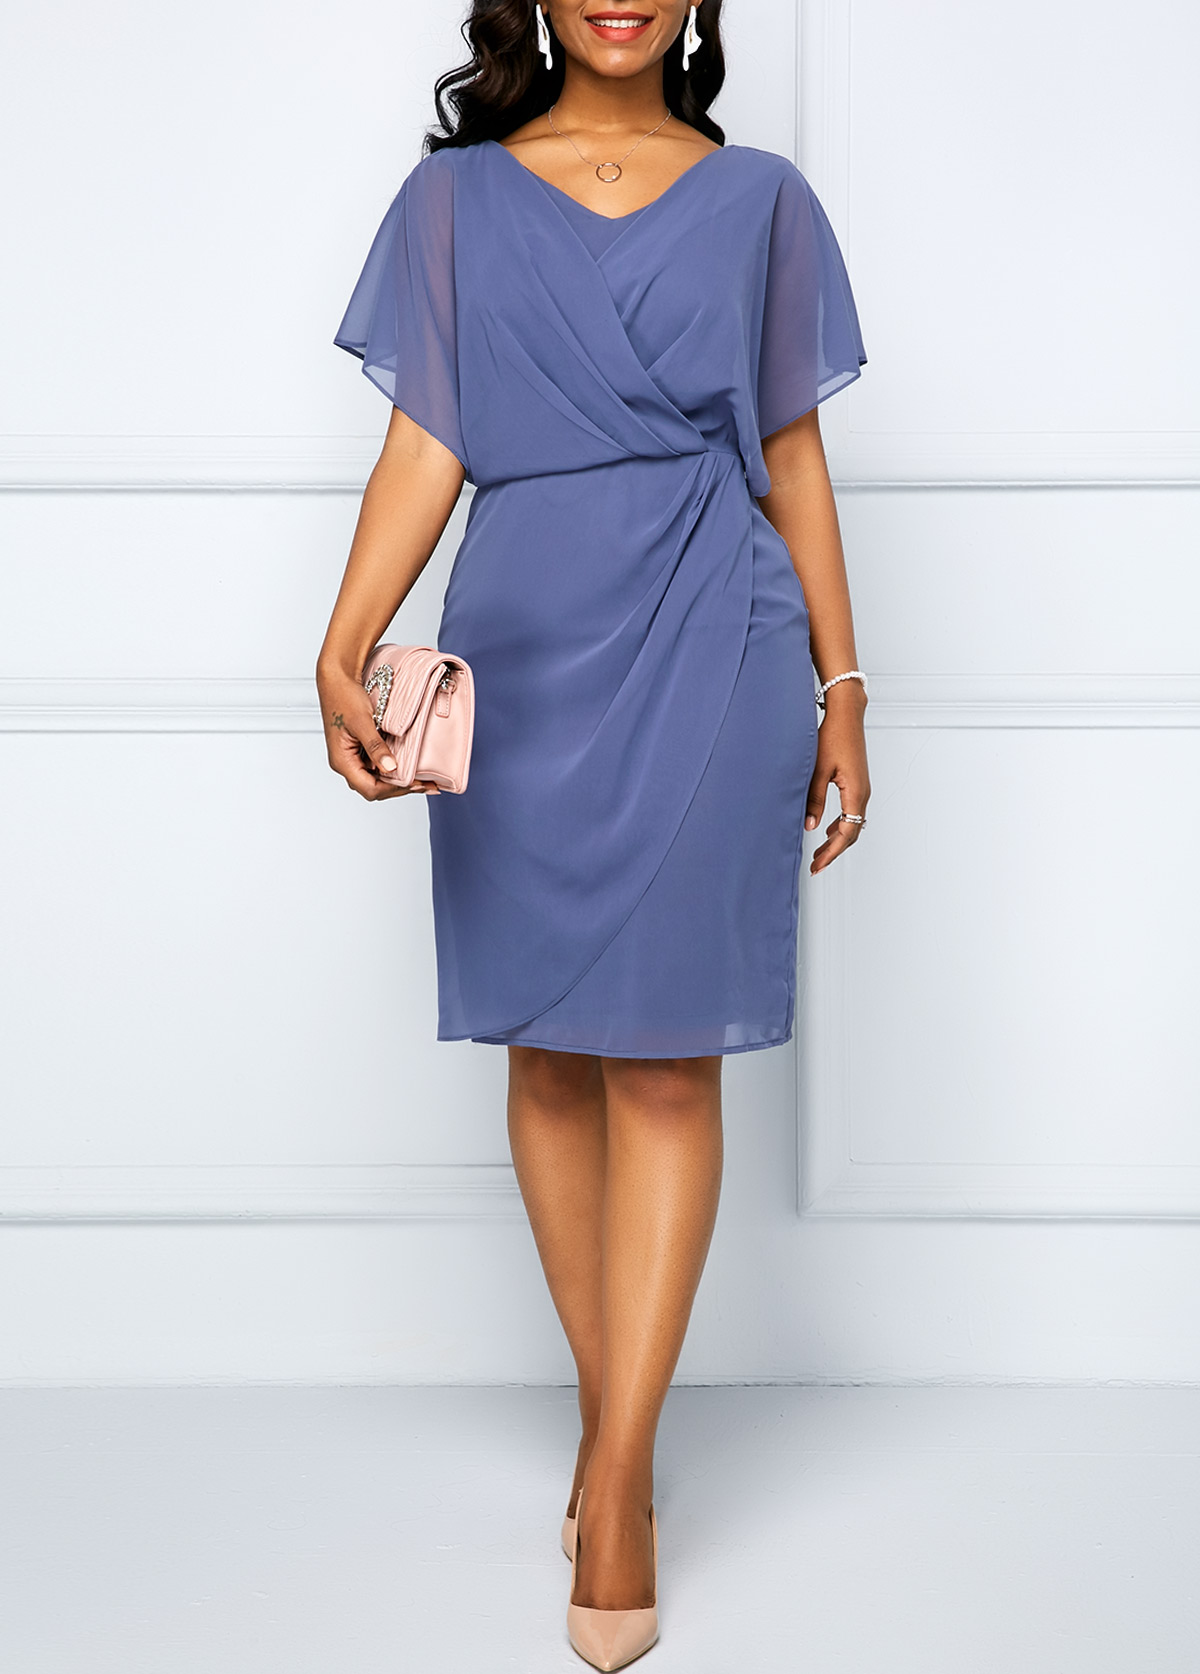 Cape Shoulder Dusty Blue Draped Surplice Chiffon Dress